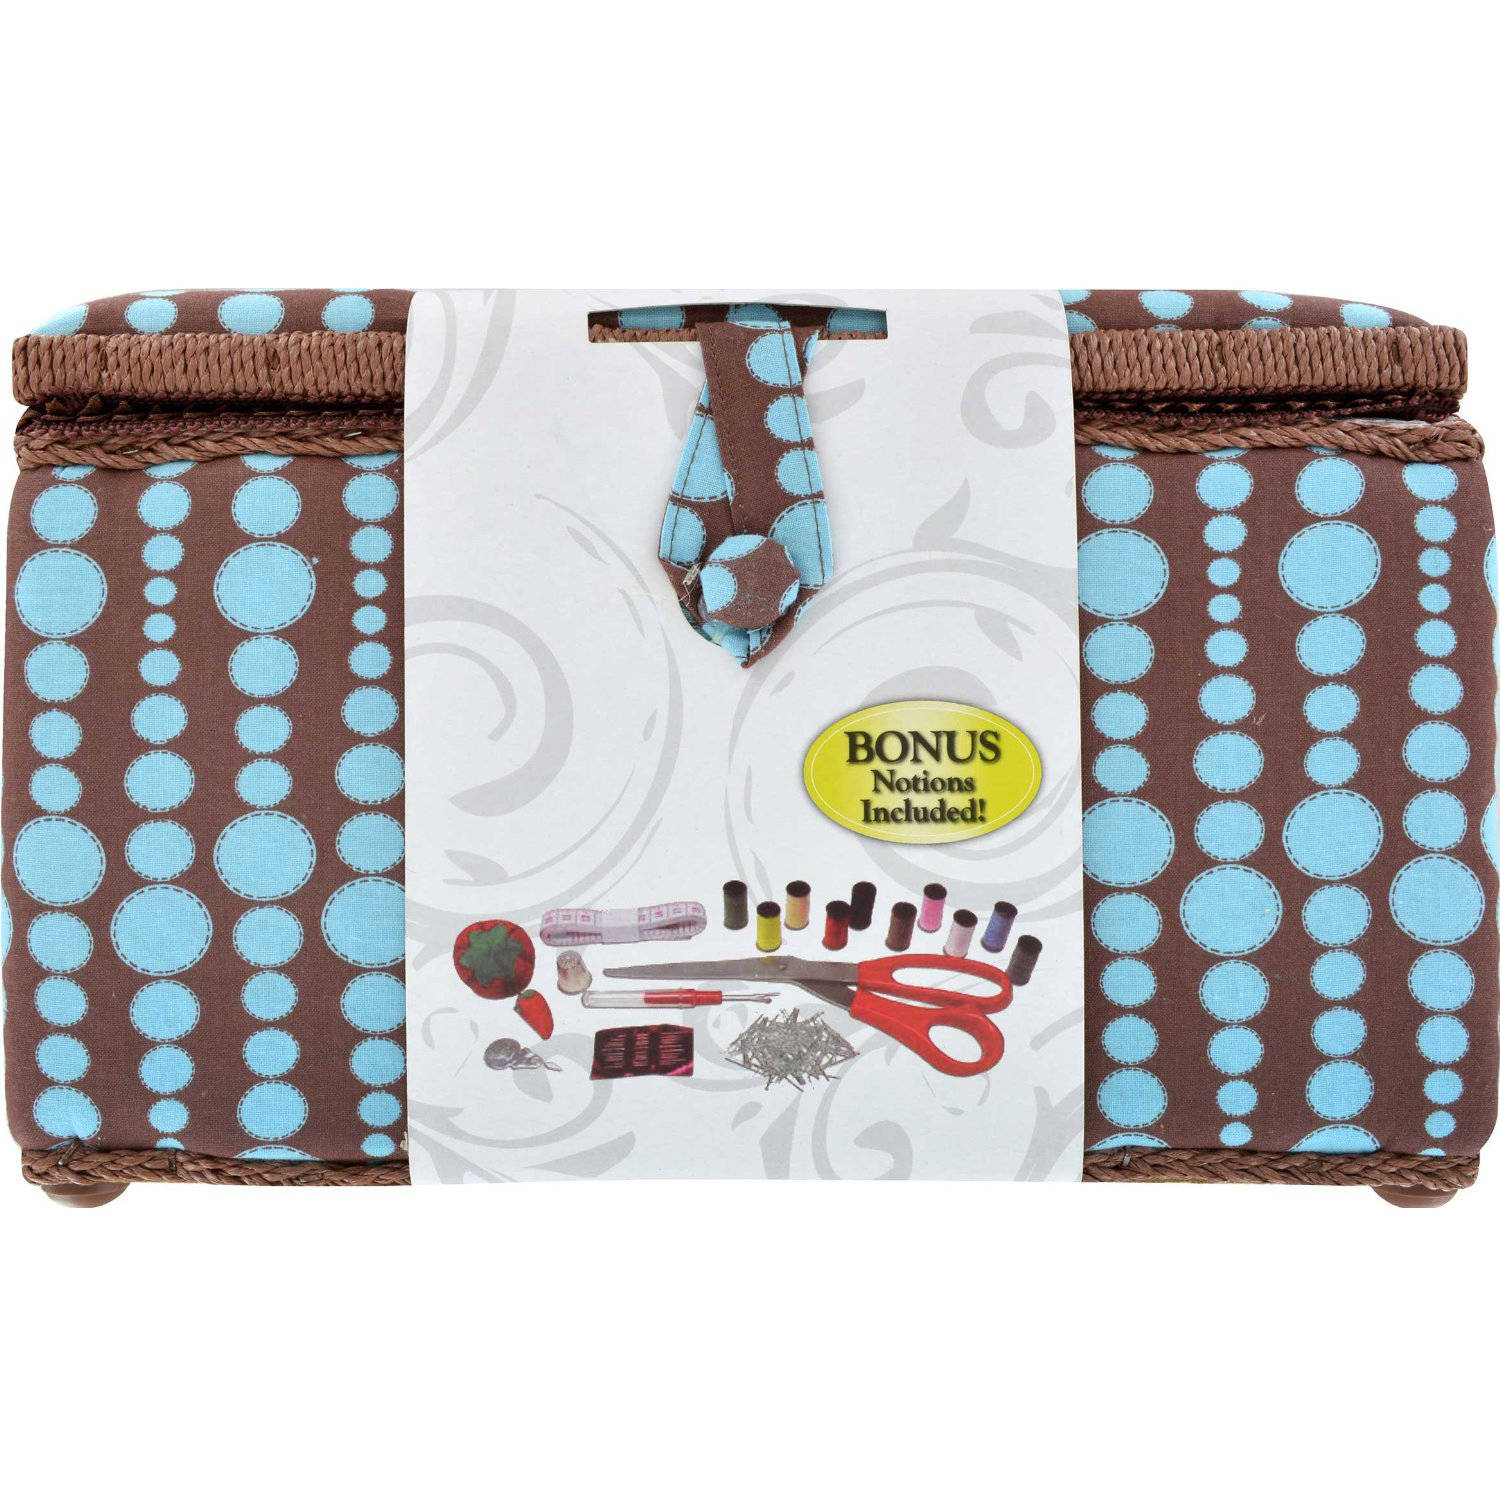 Singer X-Large Sewing Basket Kit with Accessories, Blue Dots